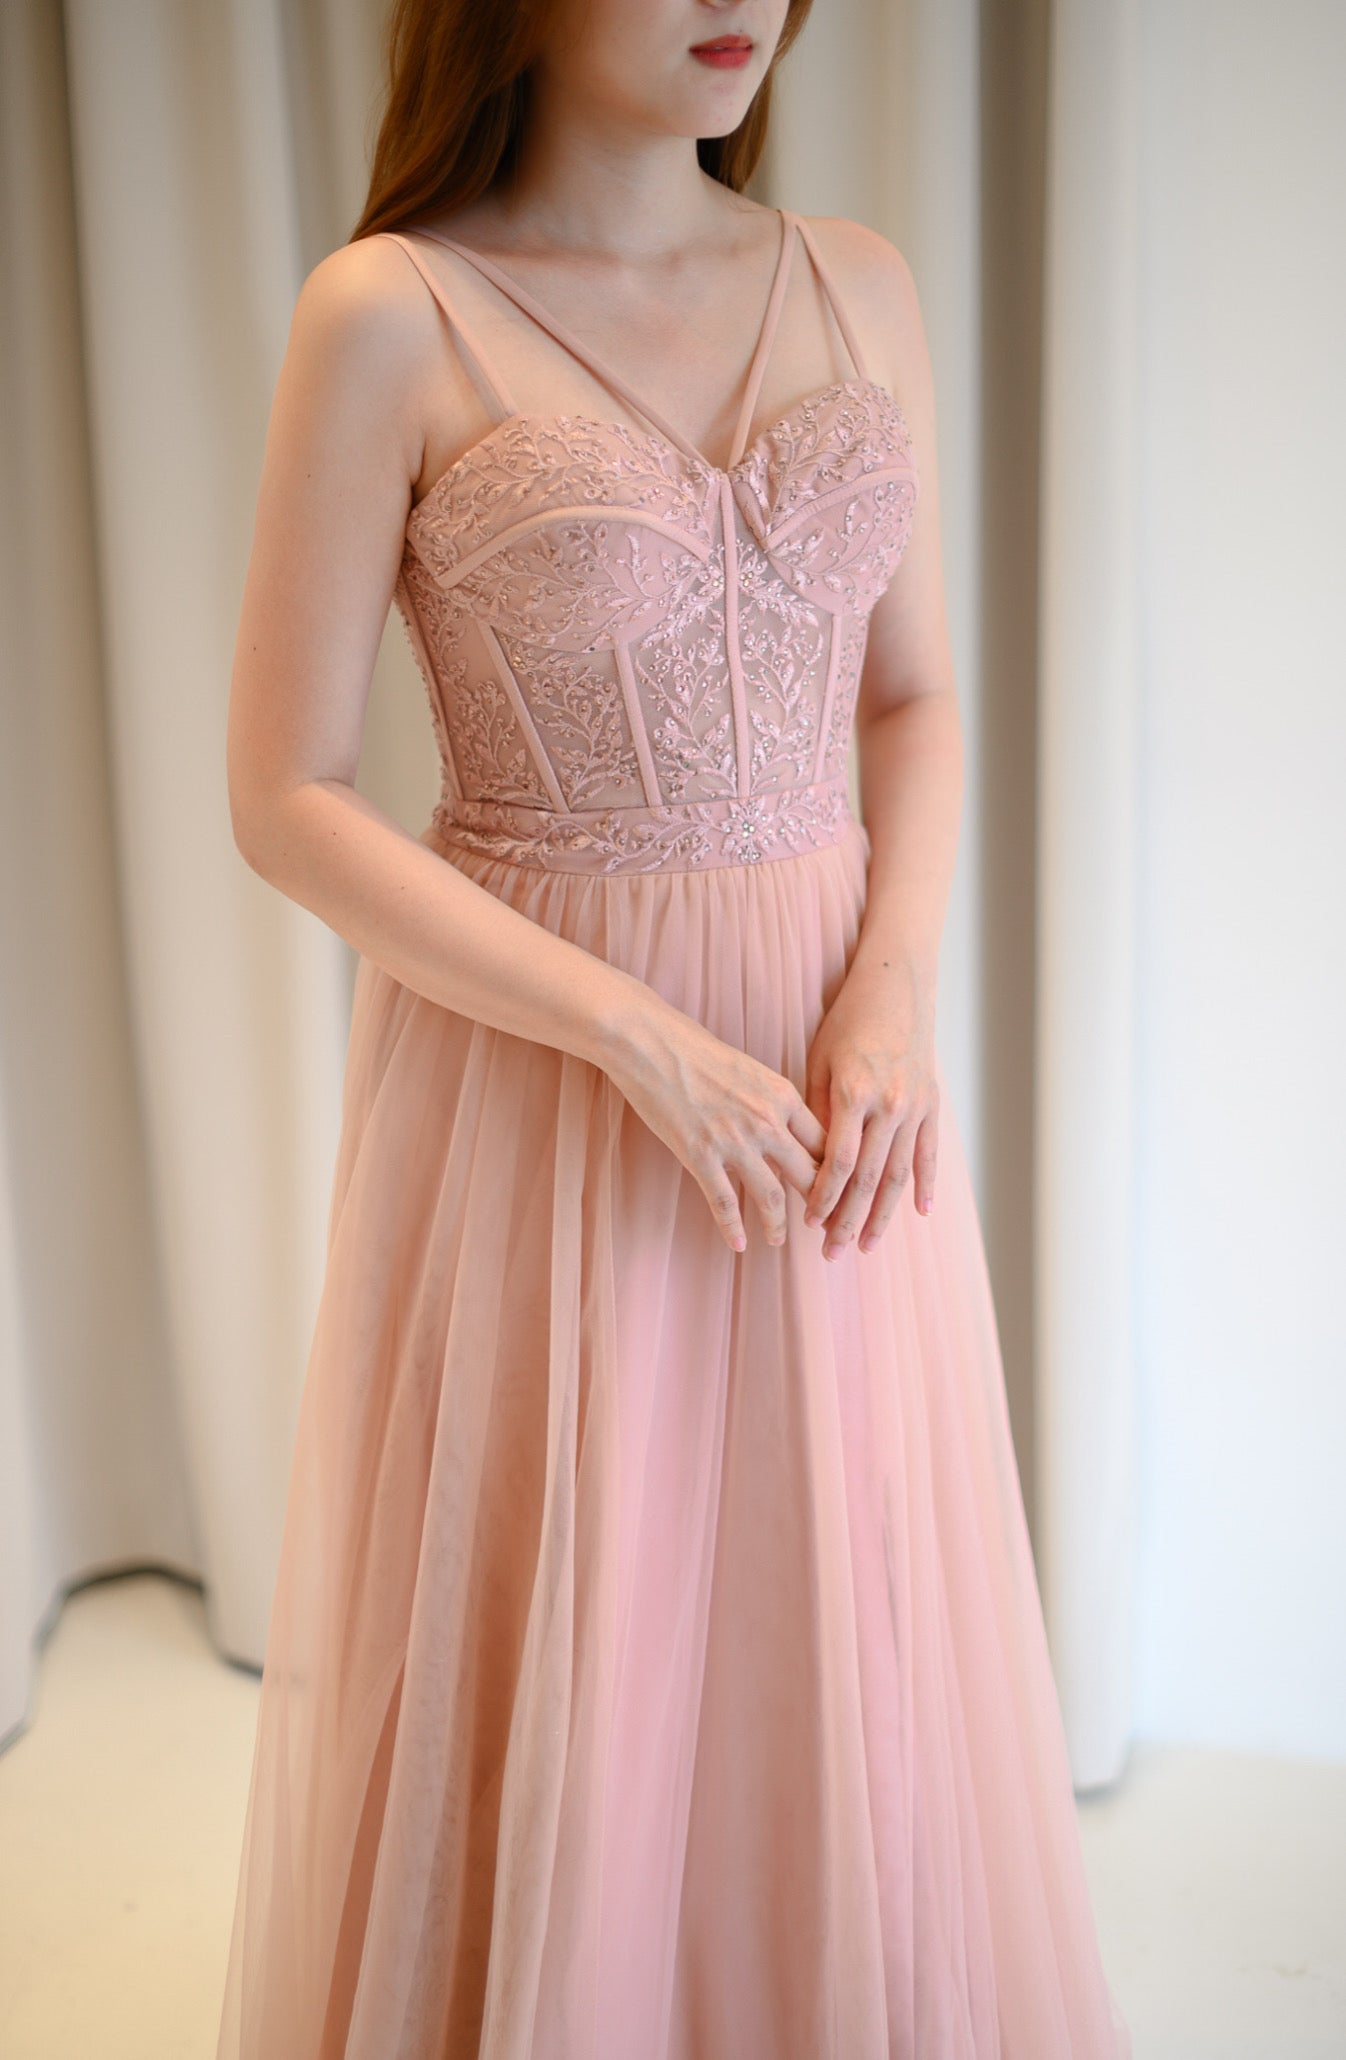 Lace Corset Dusty Pink Gown